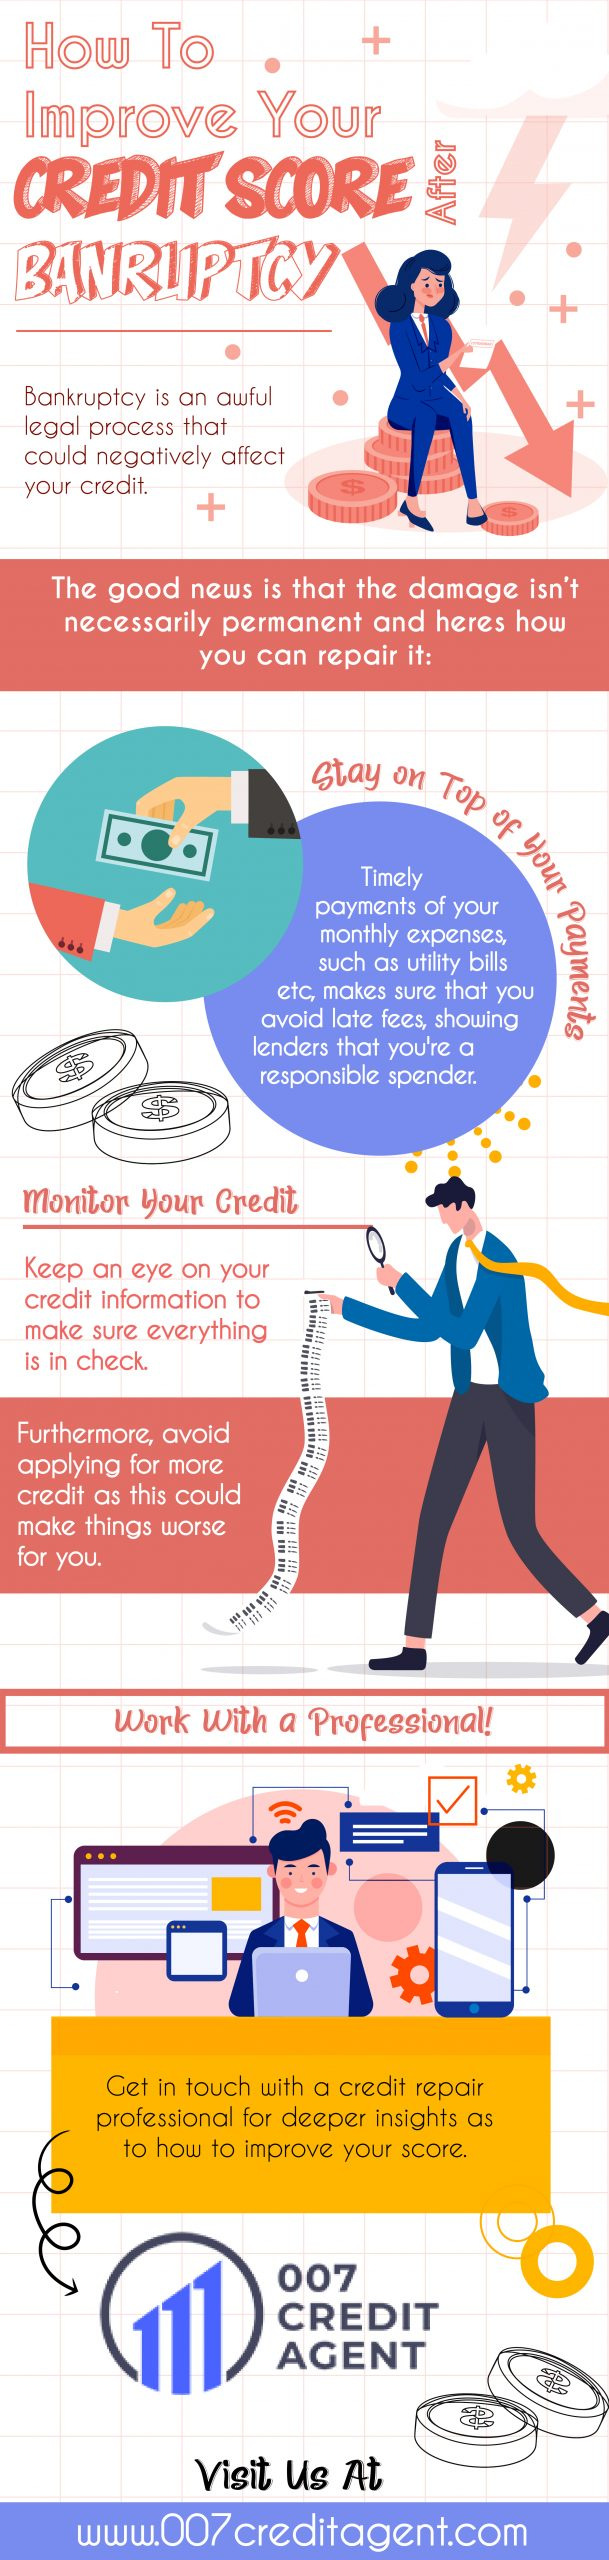 How to Improve Your Credit Score AFter Bankruptcy - Infograph